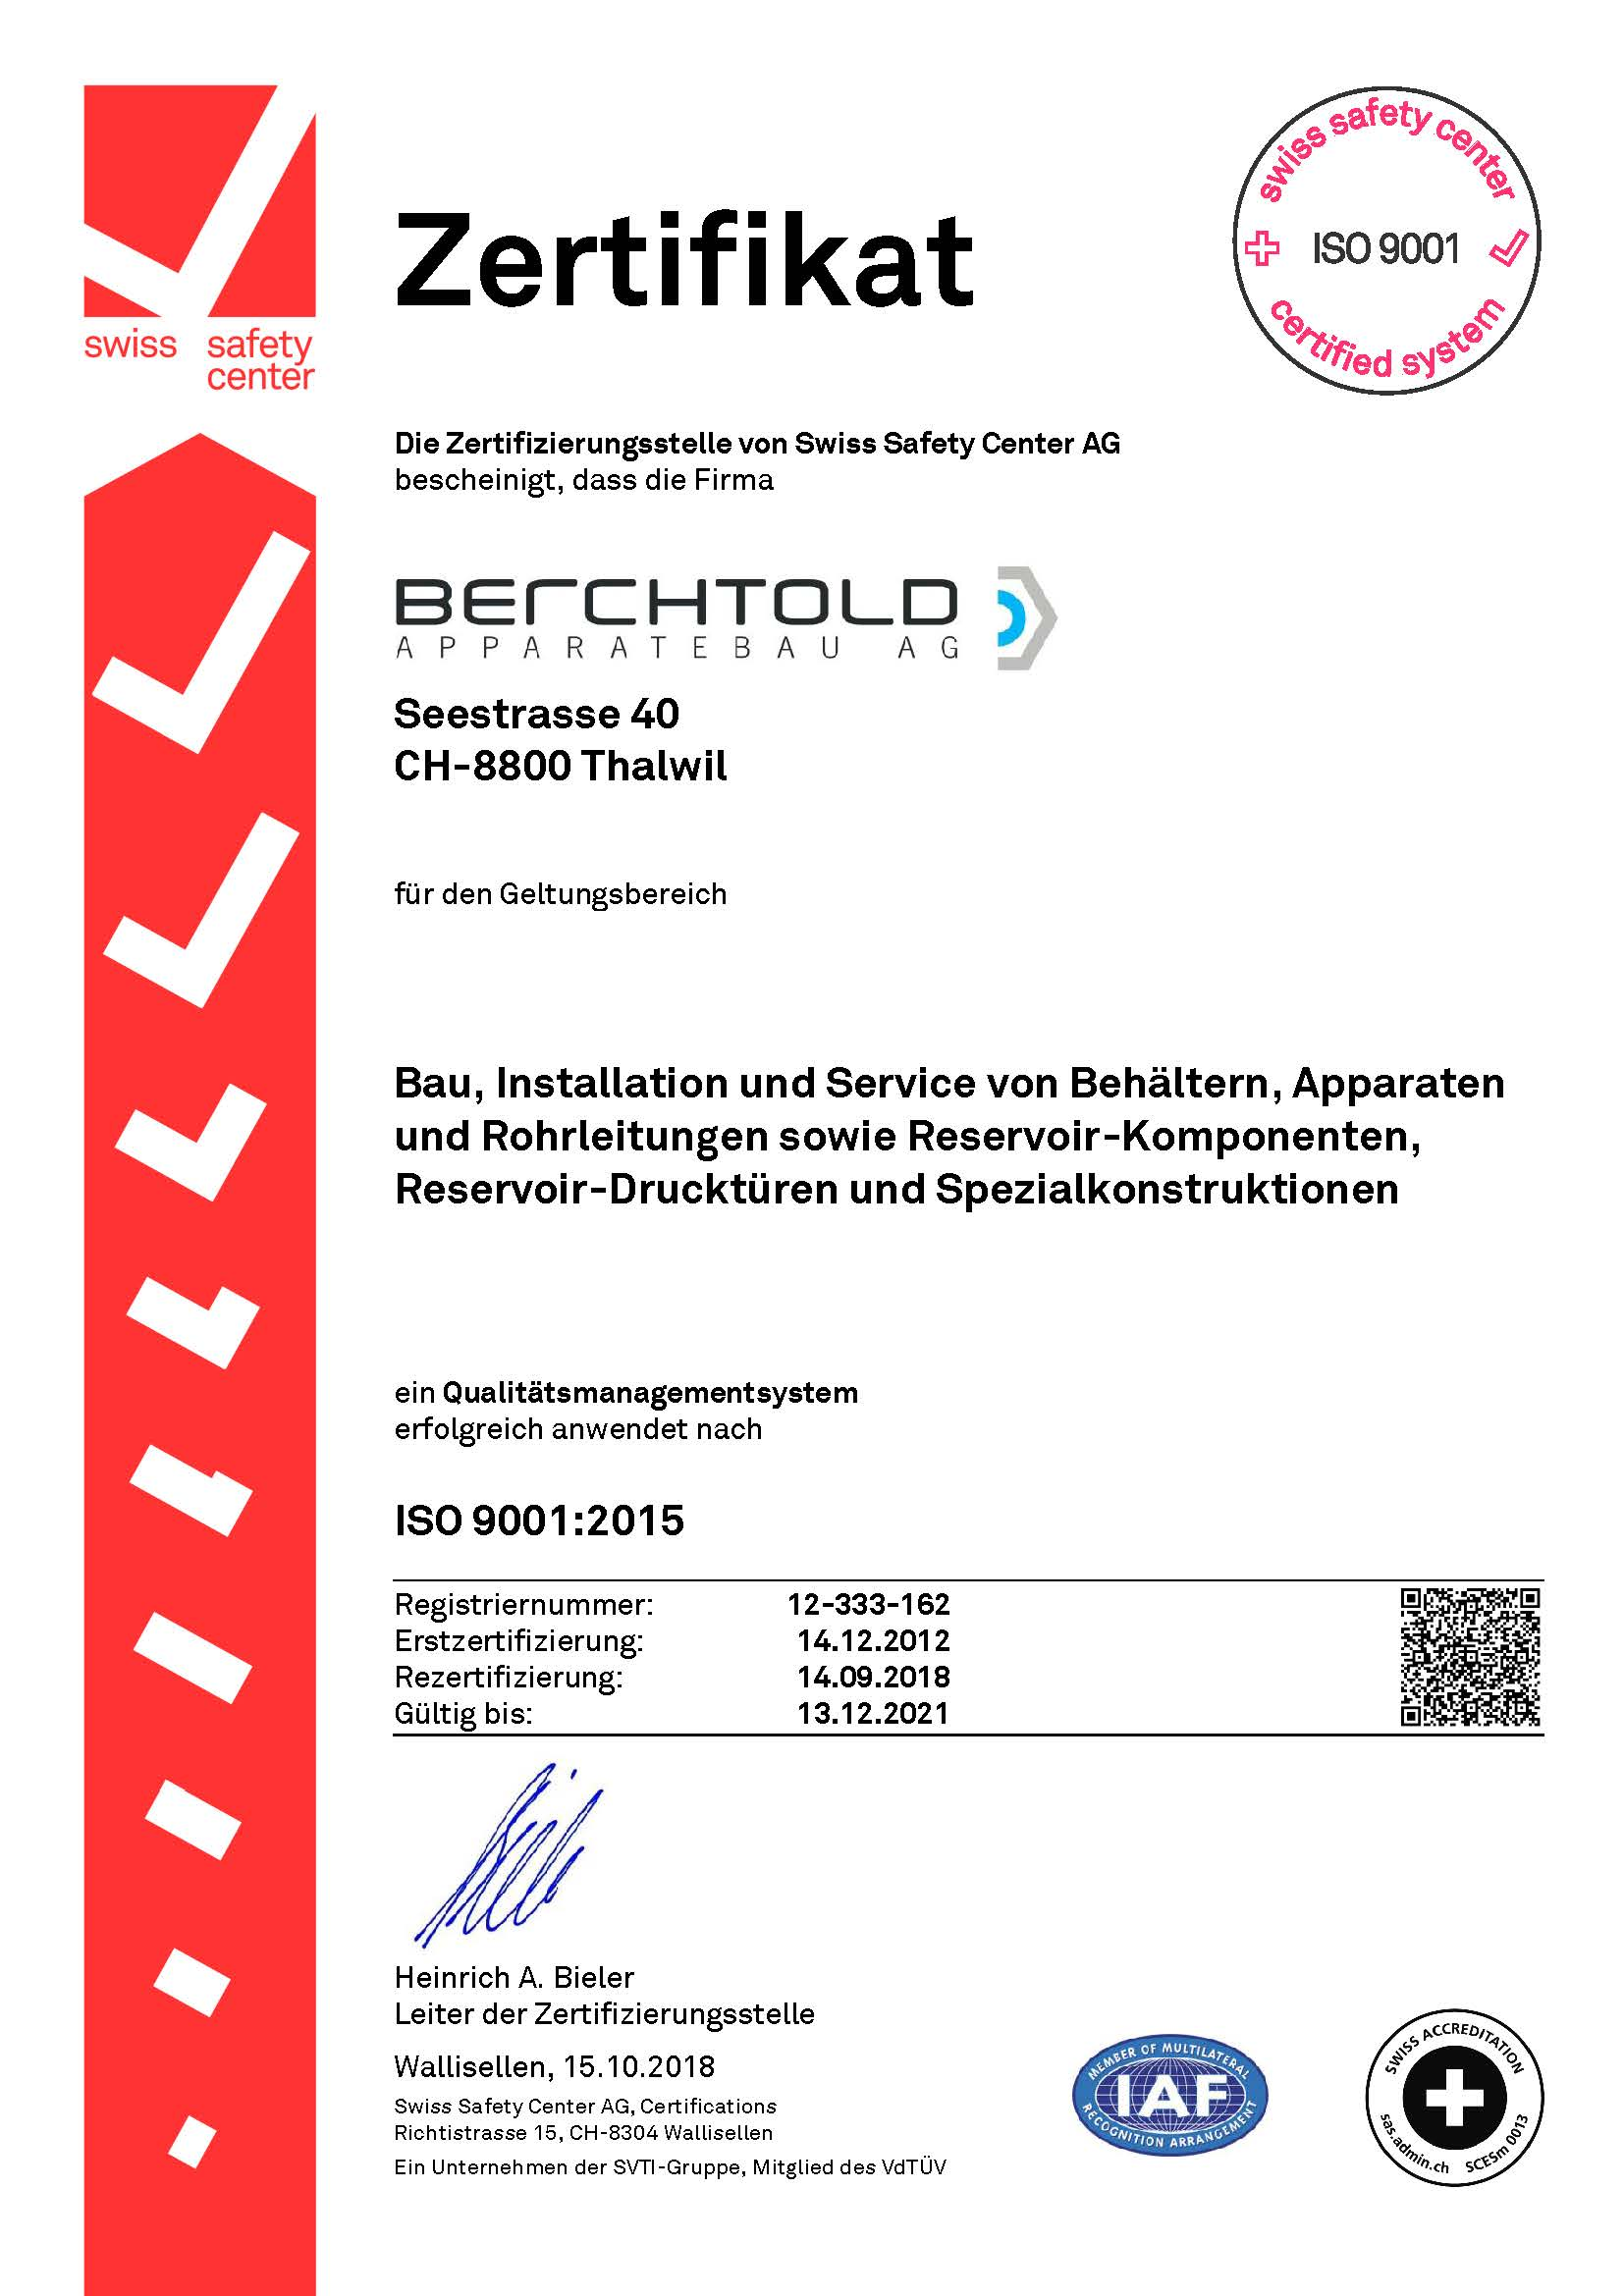 Zertifikat ISO 9001 Berchtold Apparatebau AG-signed